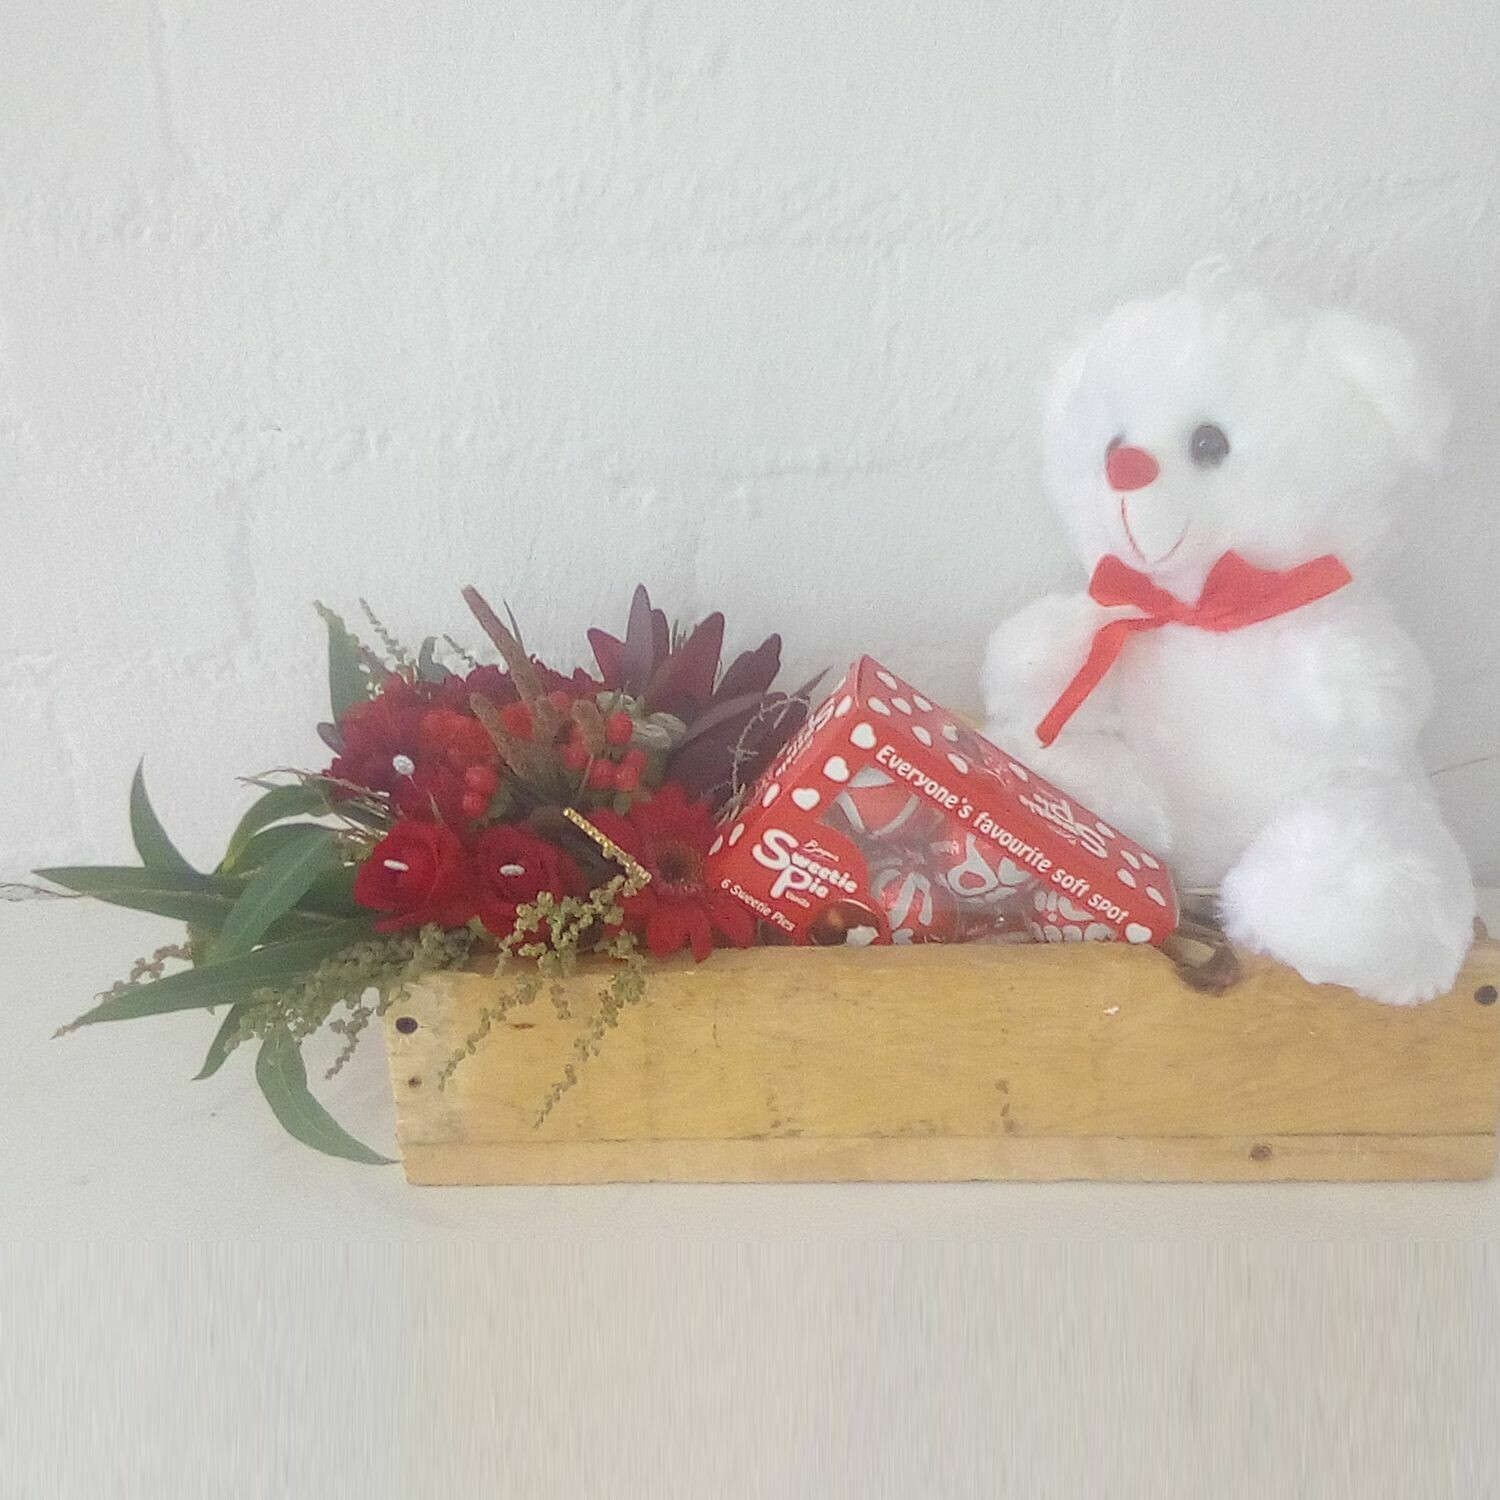 Sweety Pie Gift Box with Teddy